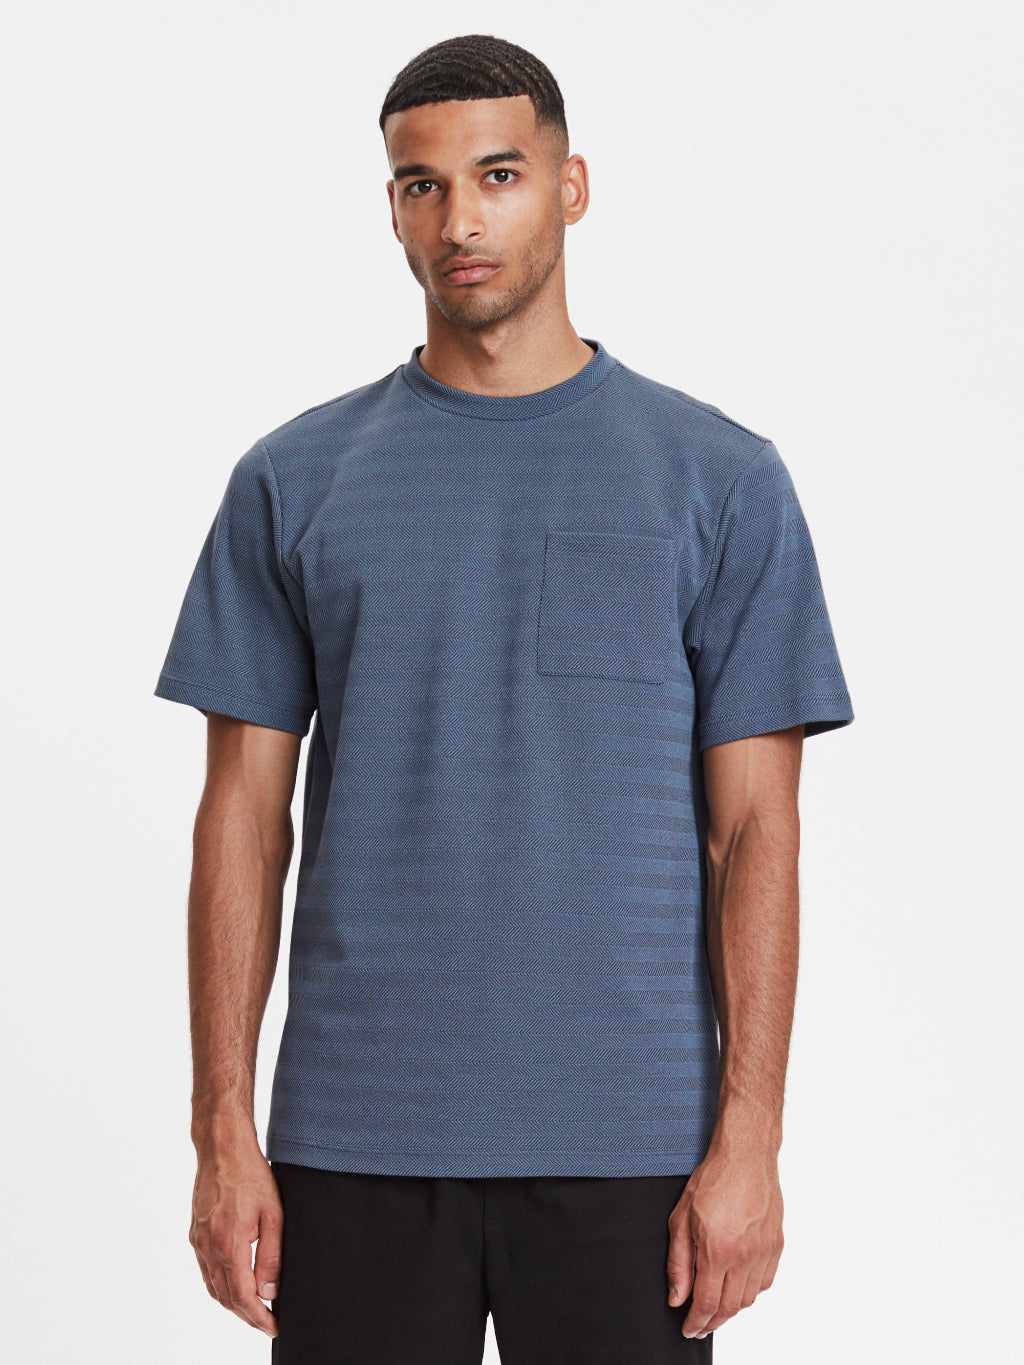 Faro Pocket T-Shirt | Blue Herringbone